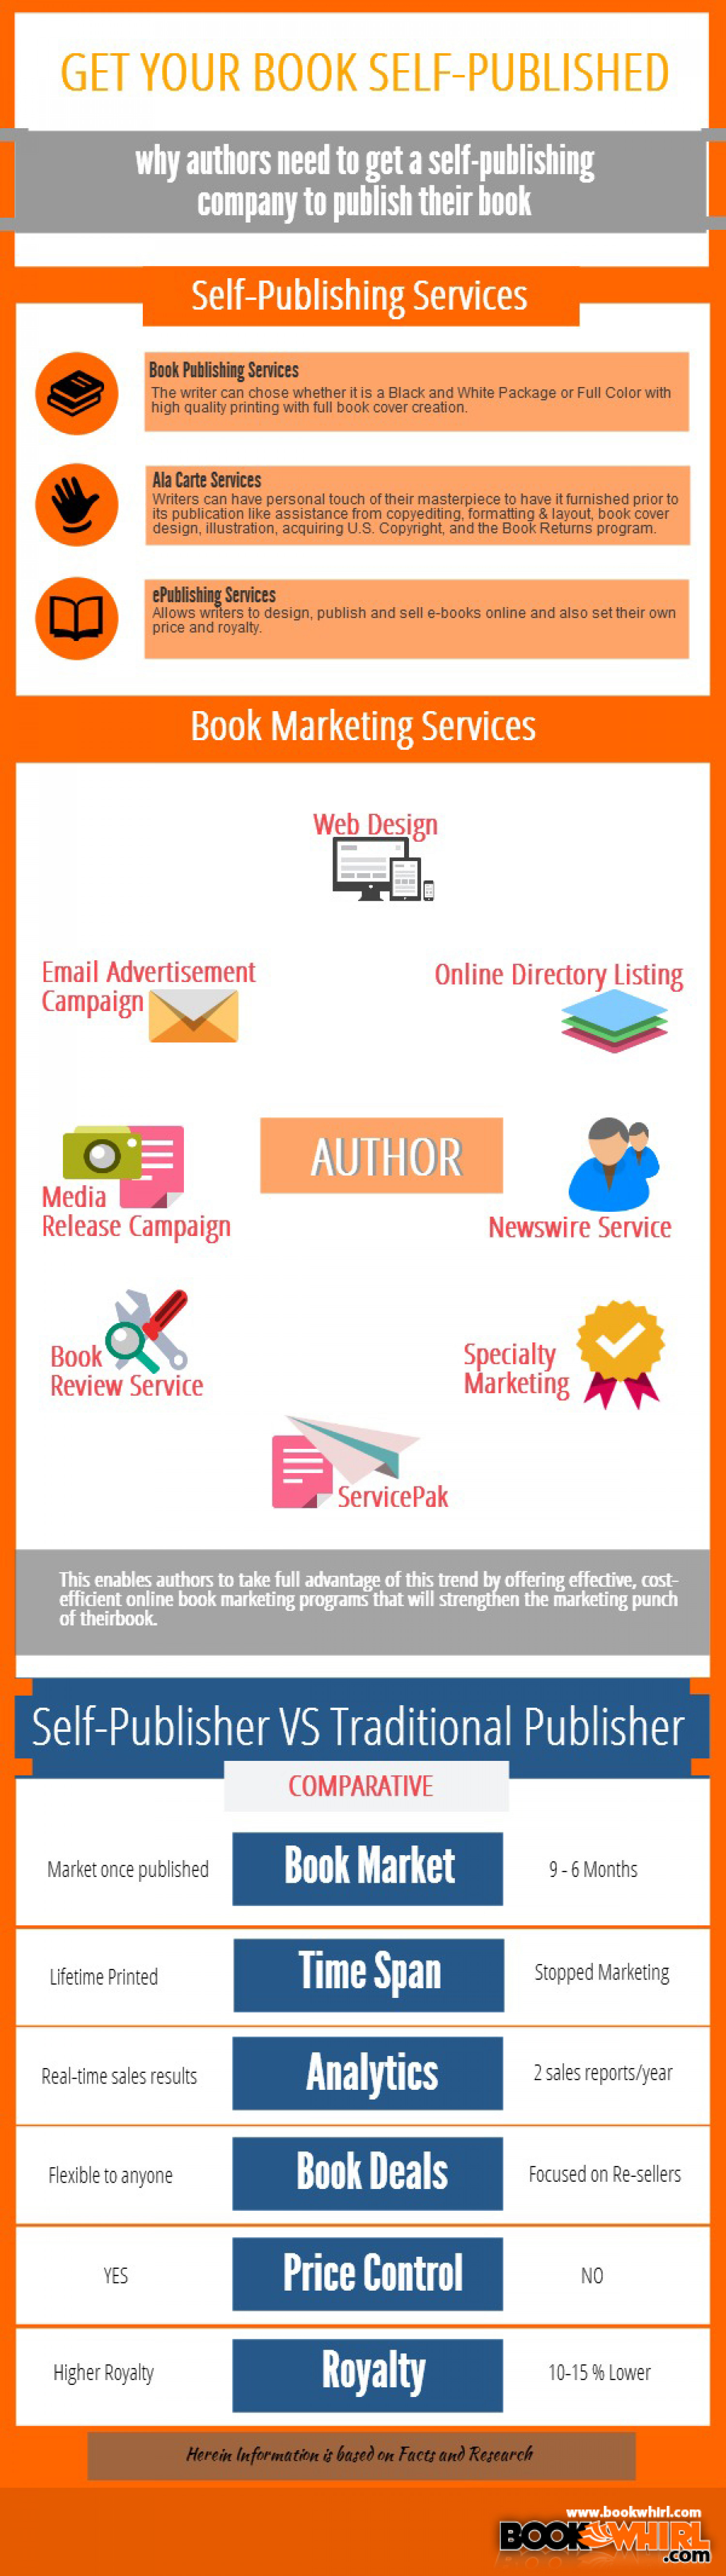 Get Your Book Self-Published Infographic